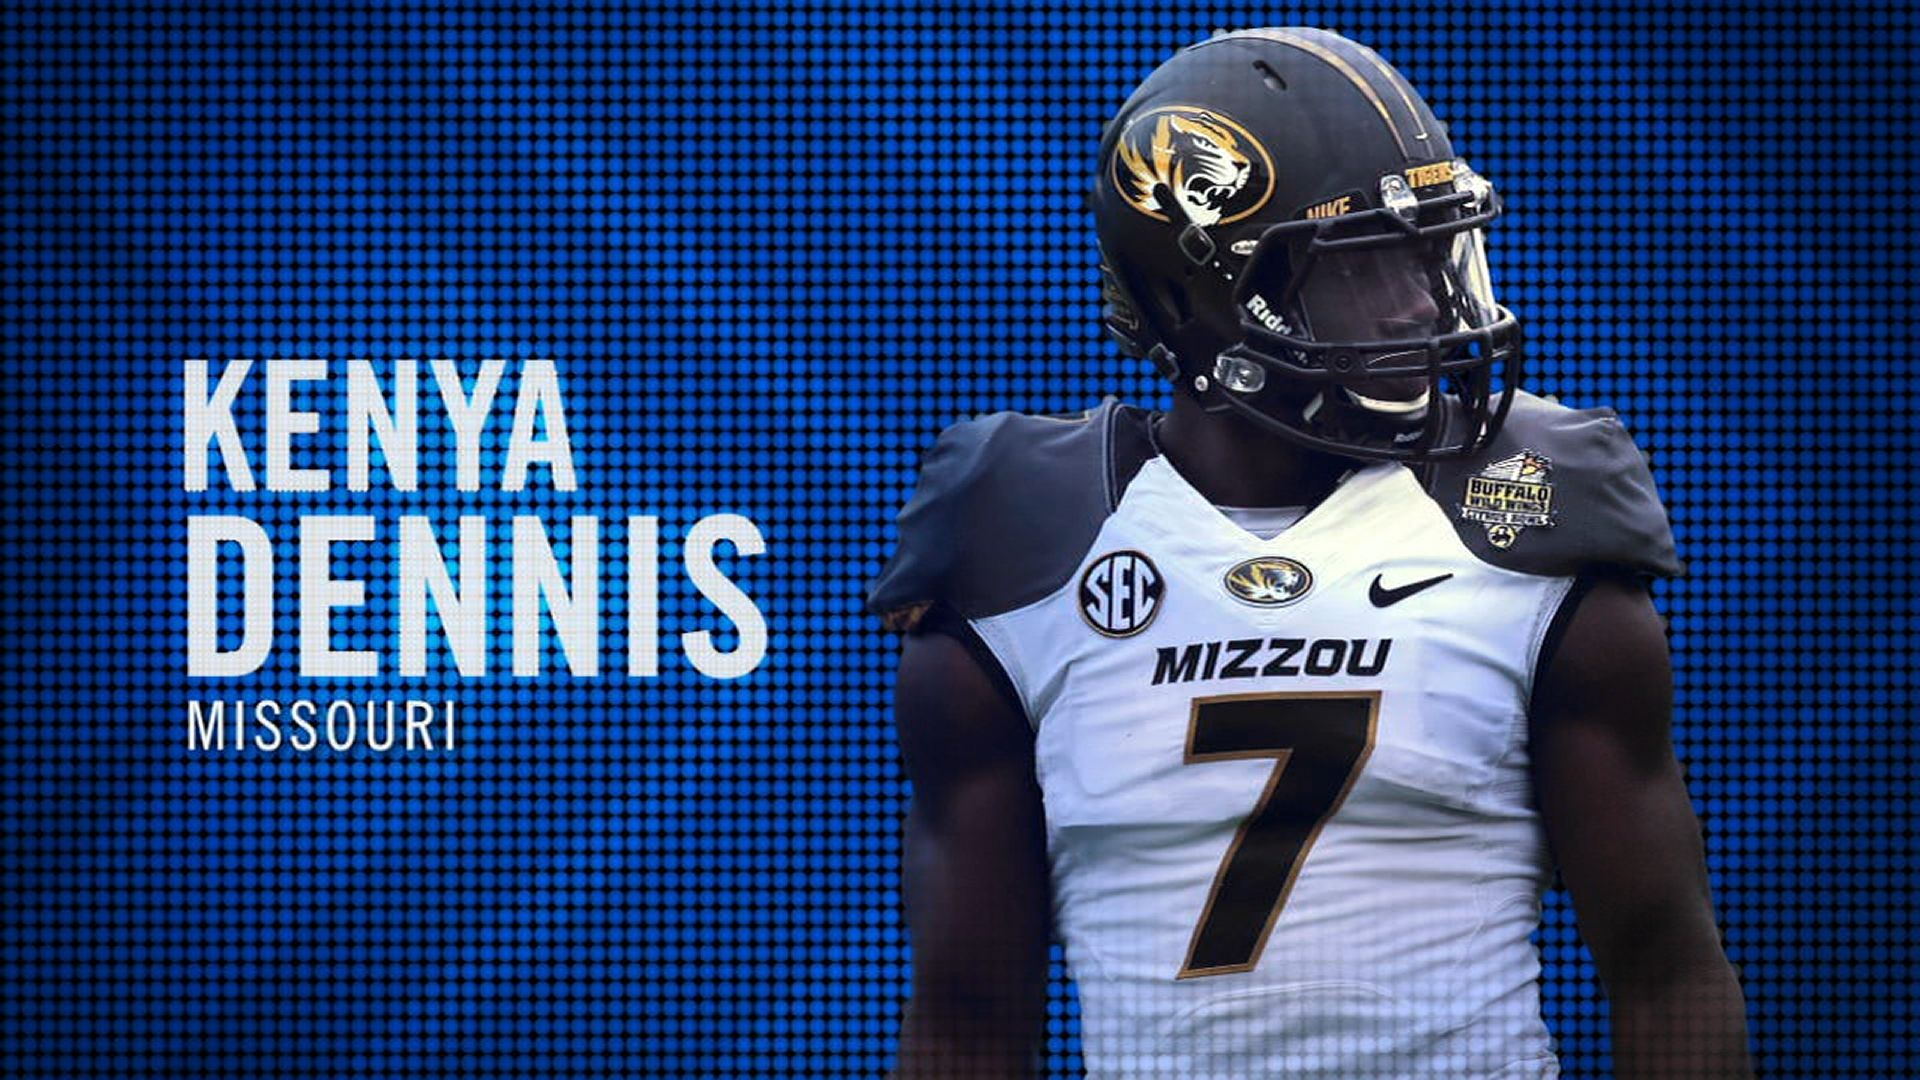 I am the SEC: Missouri's Kenya Dennis